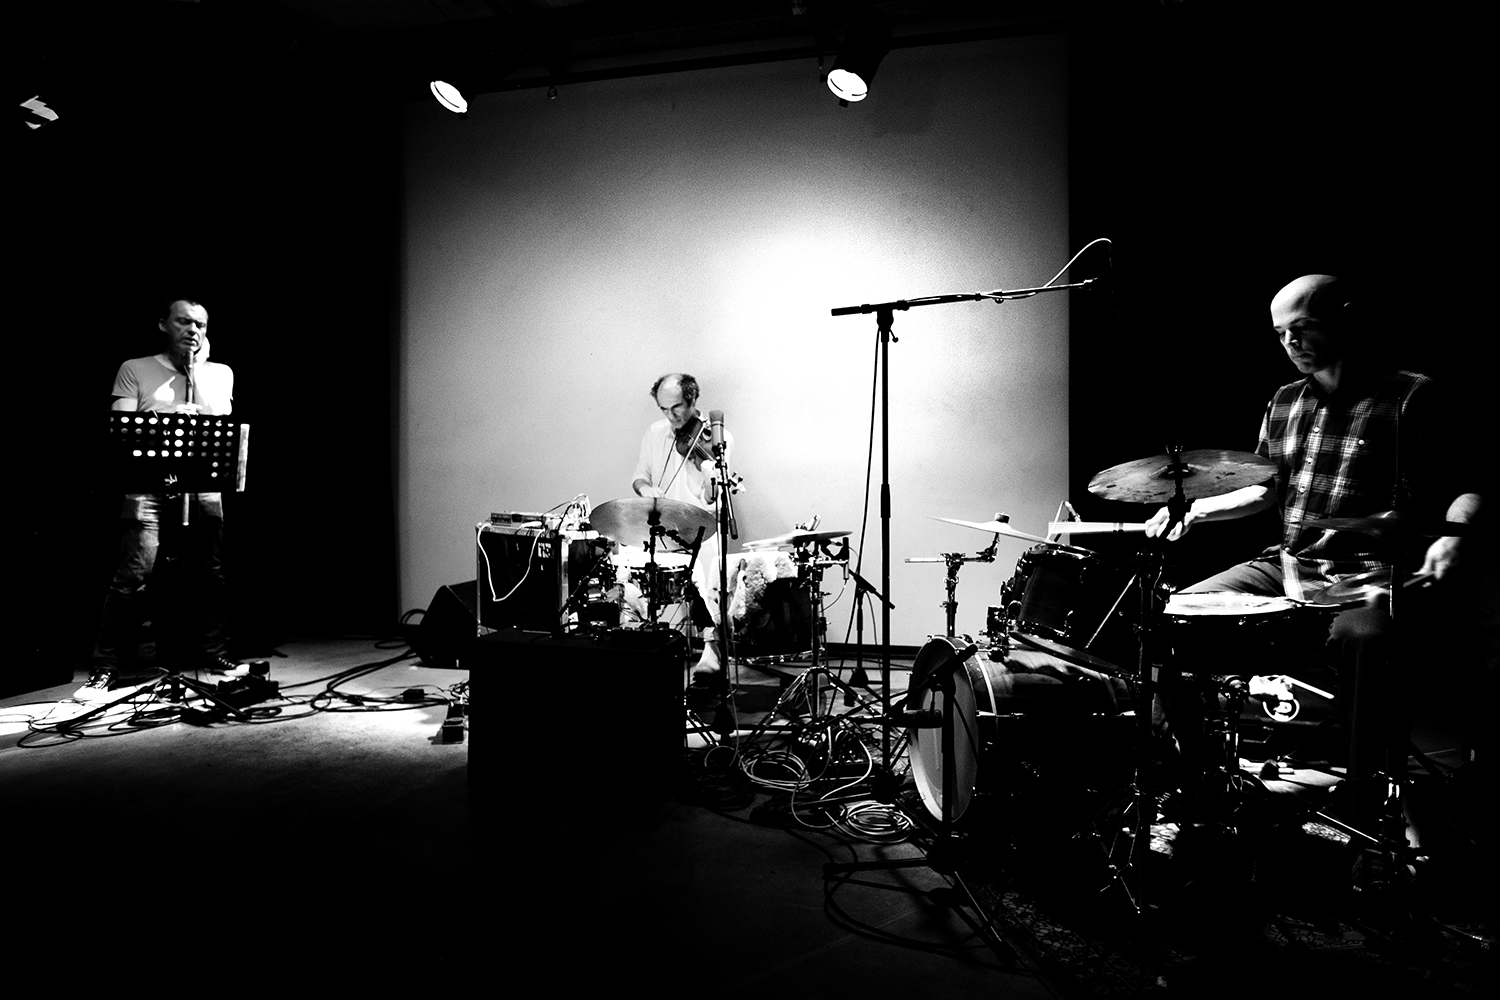 David Maranha & Chris Corsano & Richard Youngs by Laurent Orseau - Les Ateliers Claus - Brussels, Belgium #2